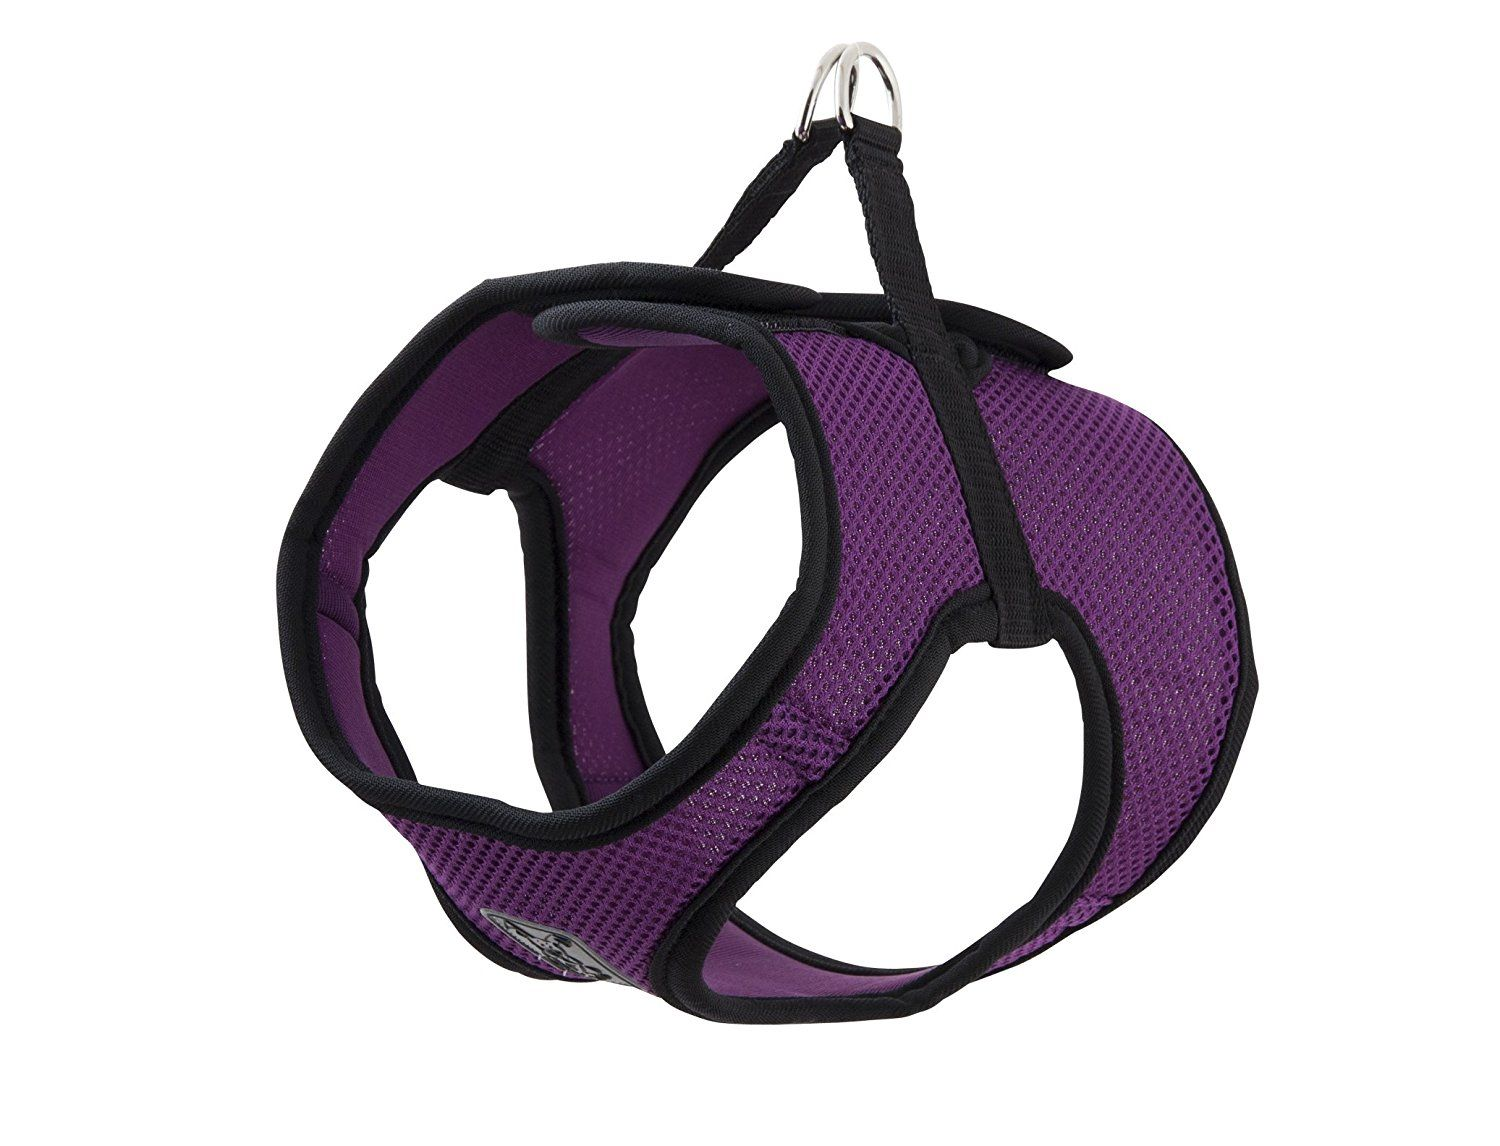 Pin by Cute Dogs on Dog stuff (With images) Dog harness